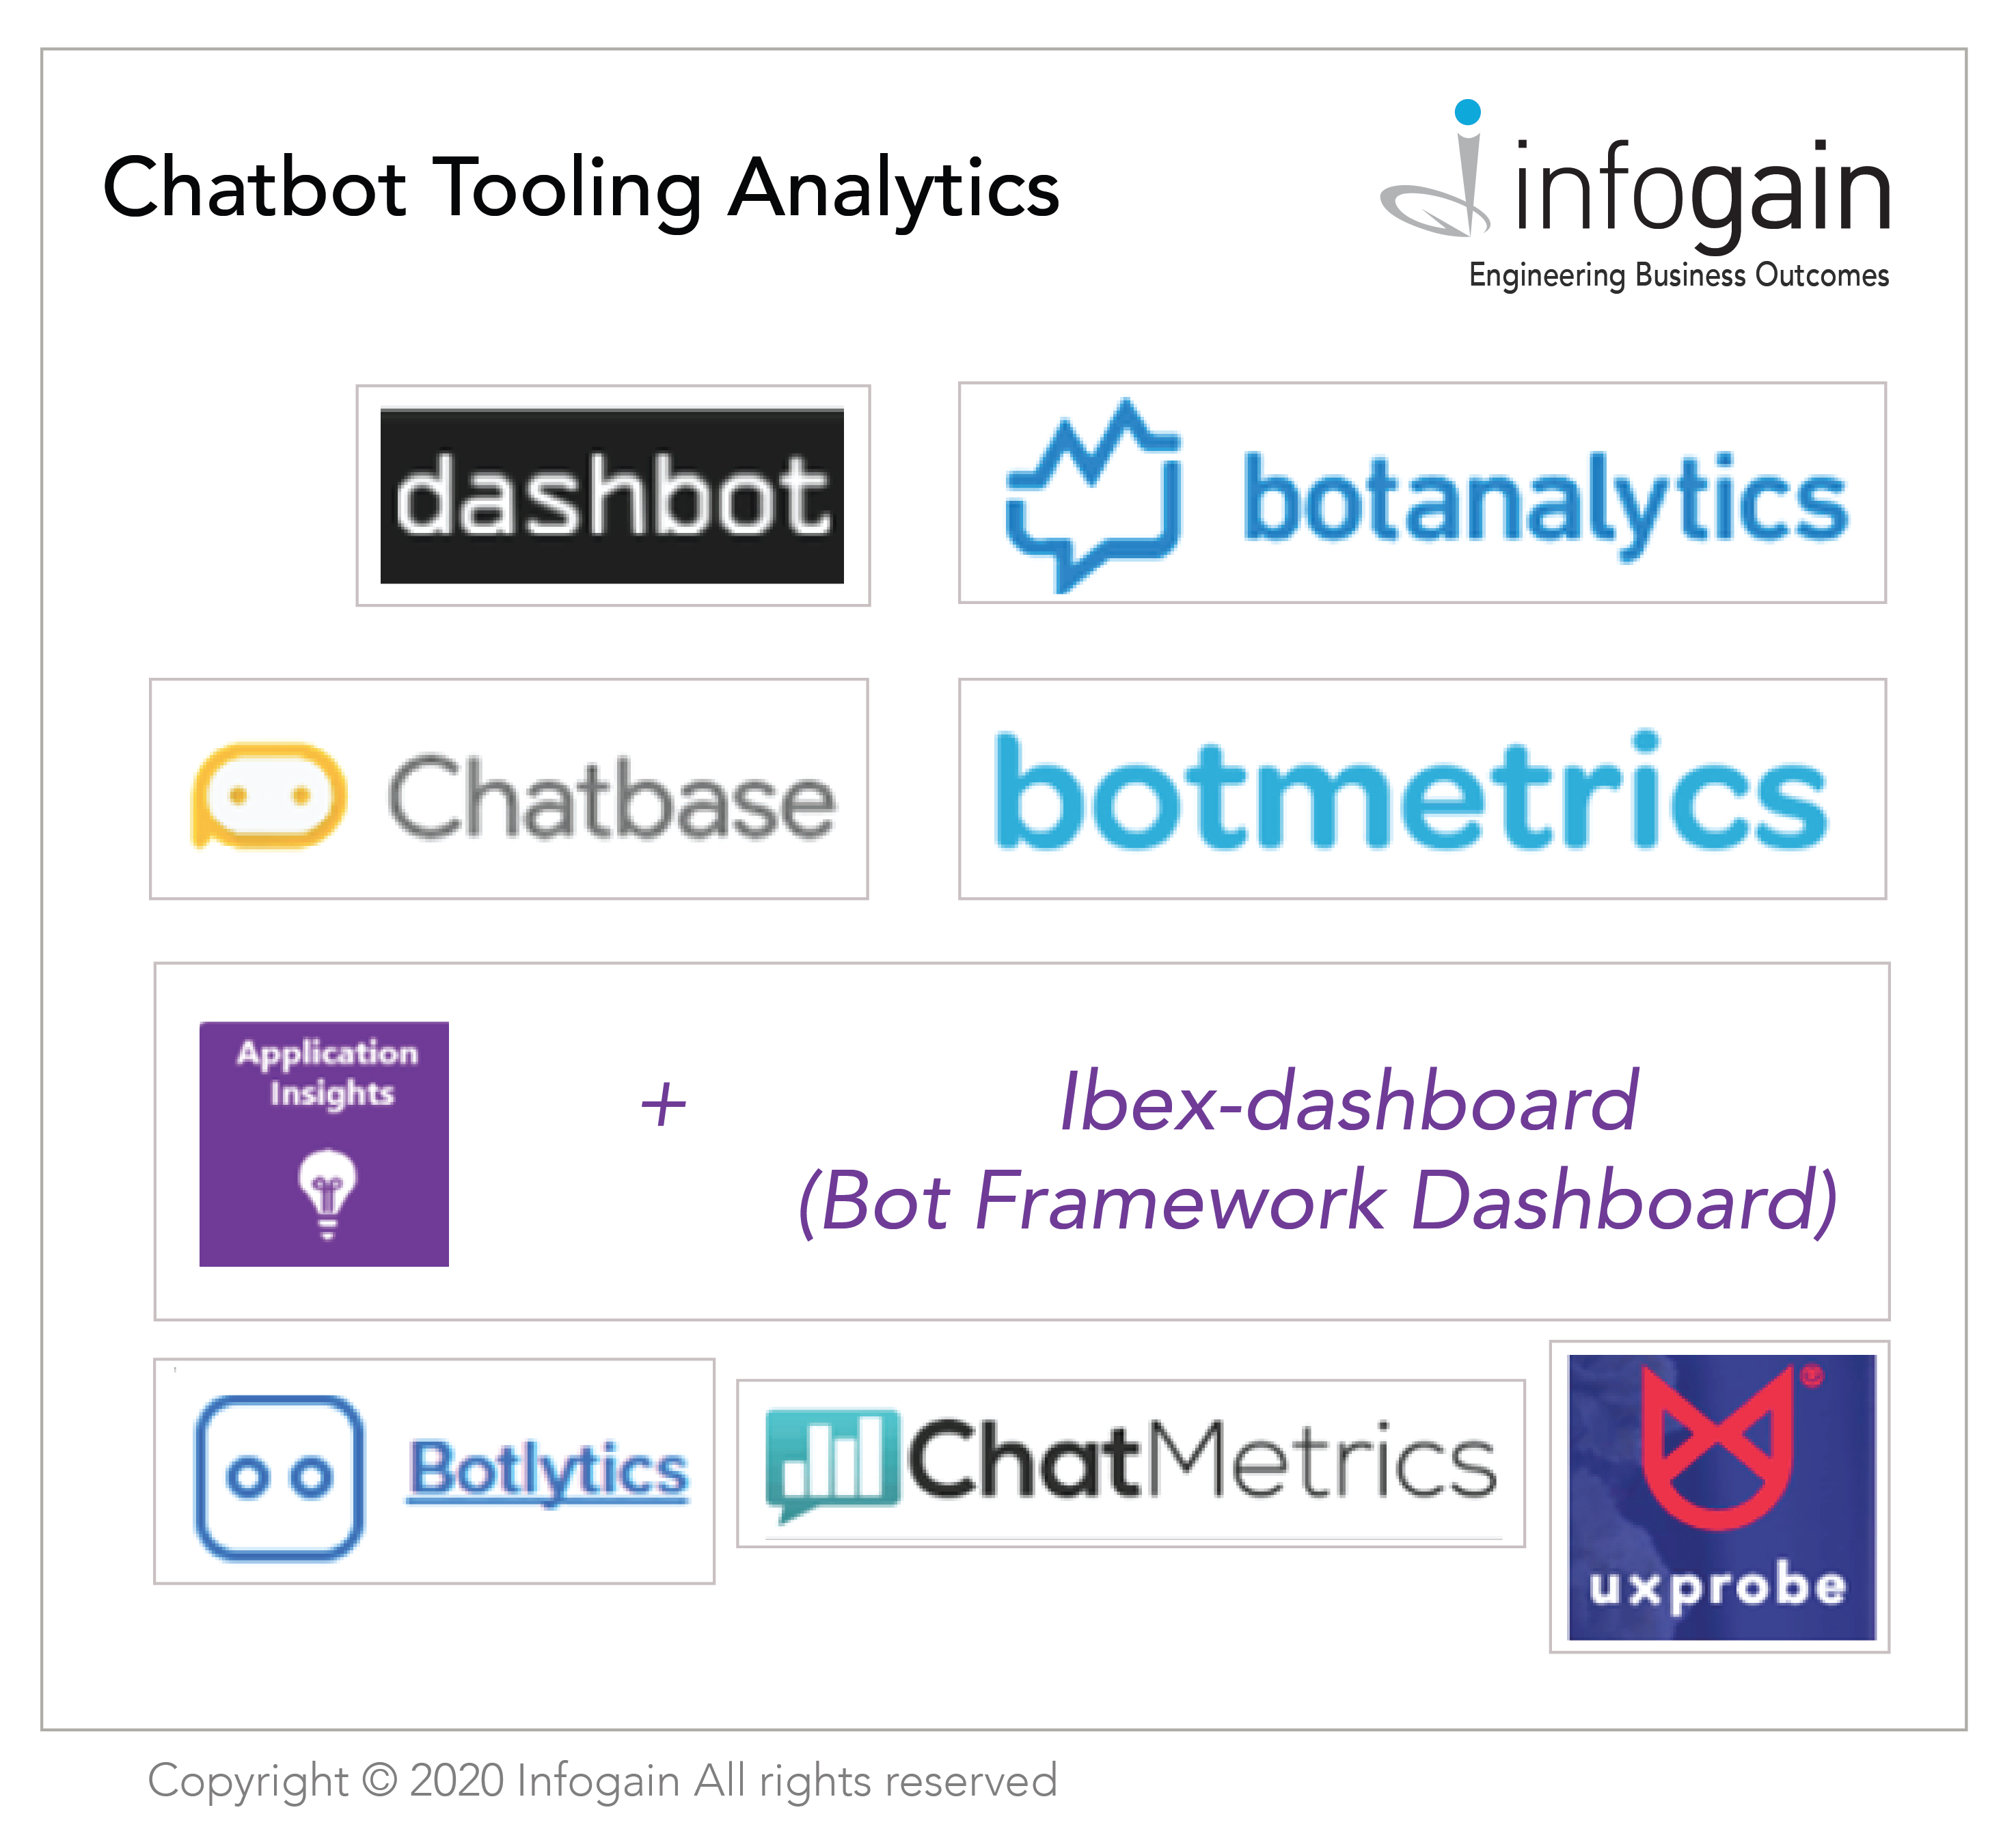 What is the best way to get data from Chatbots